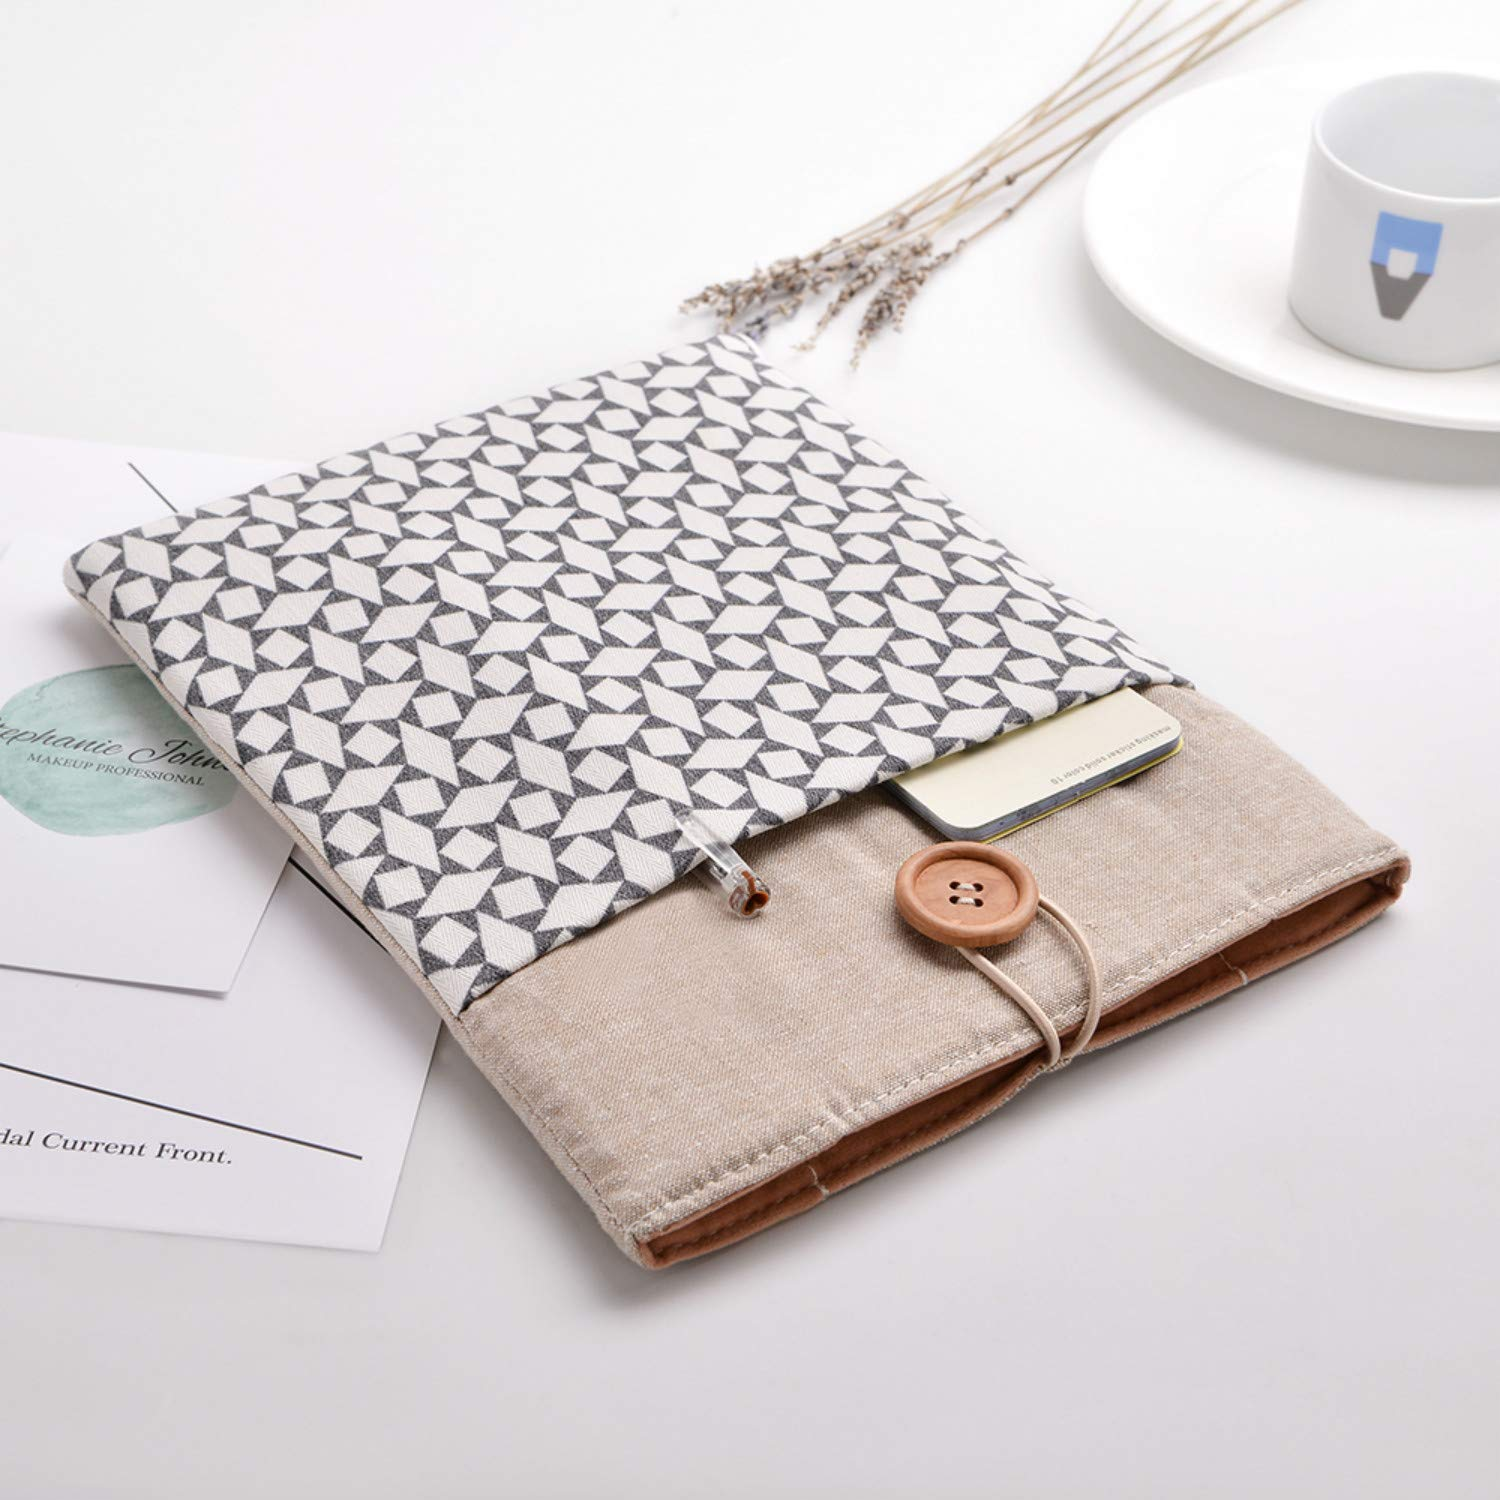 Macbook Air Shipping included Sleeve 13